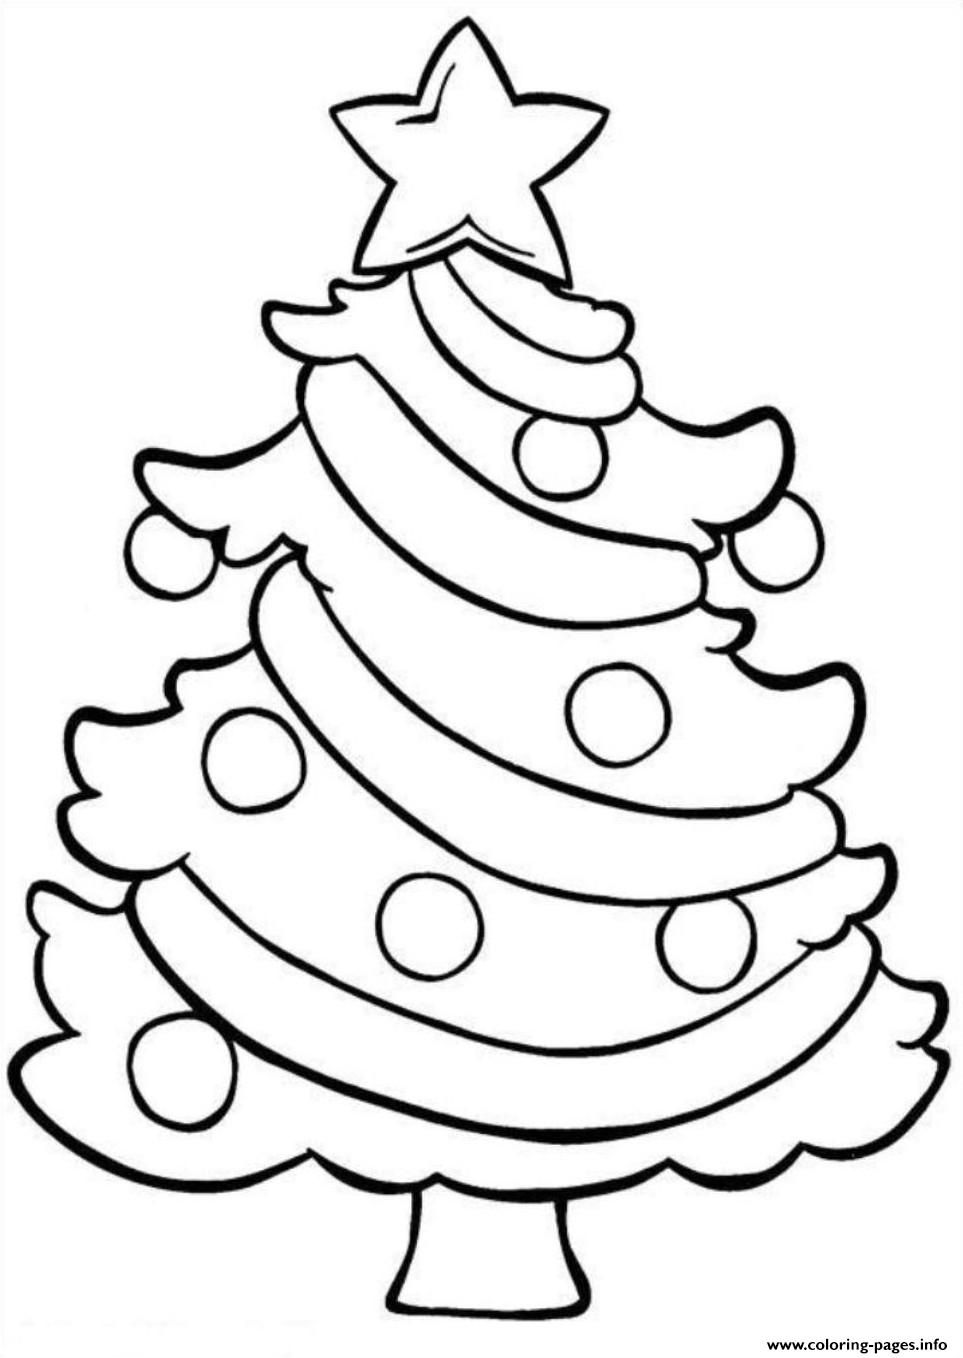 Print Coloring Pages Christmas Tree Easy E1449689938358f6df Color Free Christmas Coloring Pages Christmas Tree Coloring Page Printable Christmas Coloring Pages